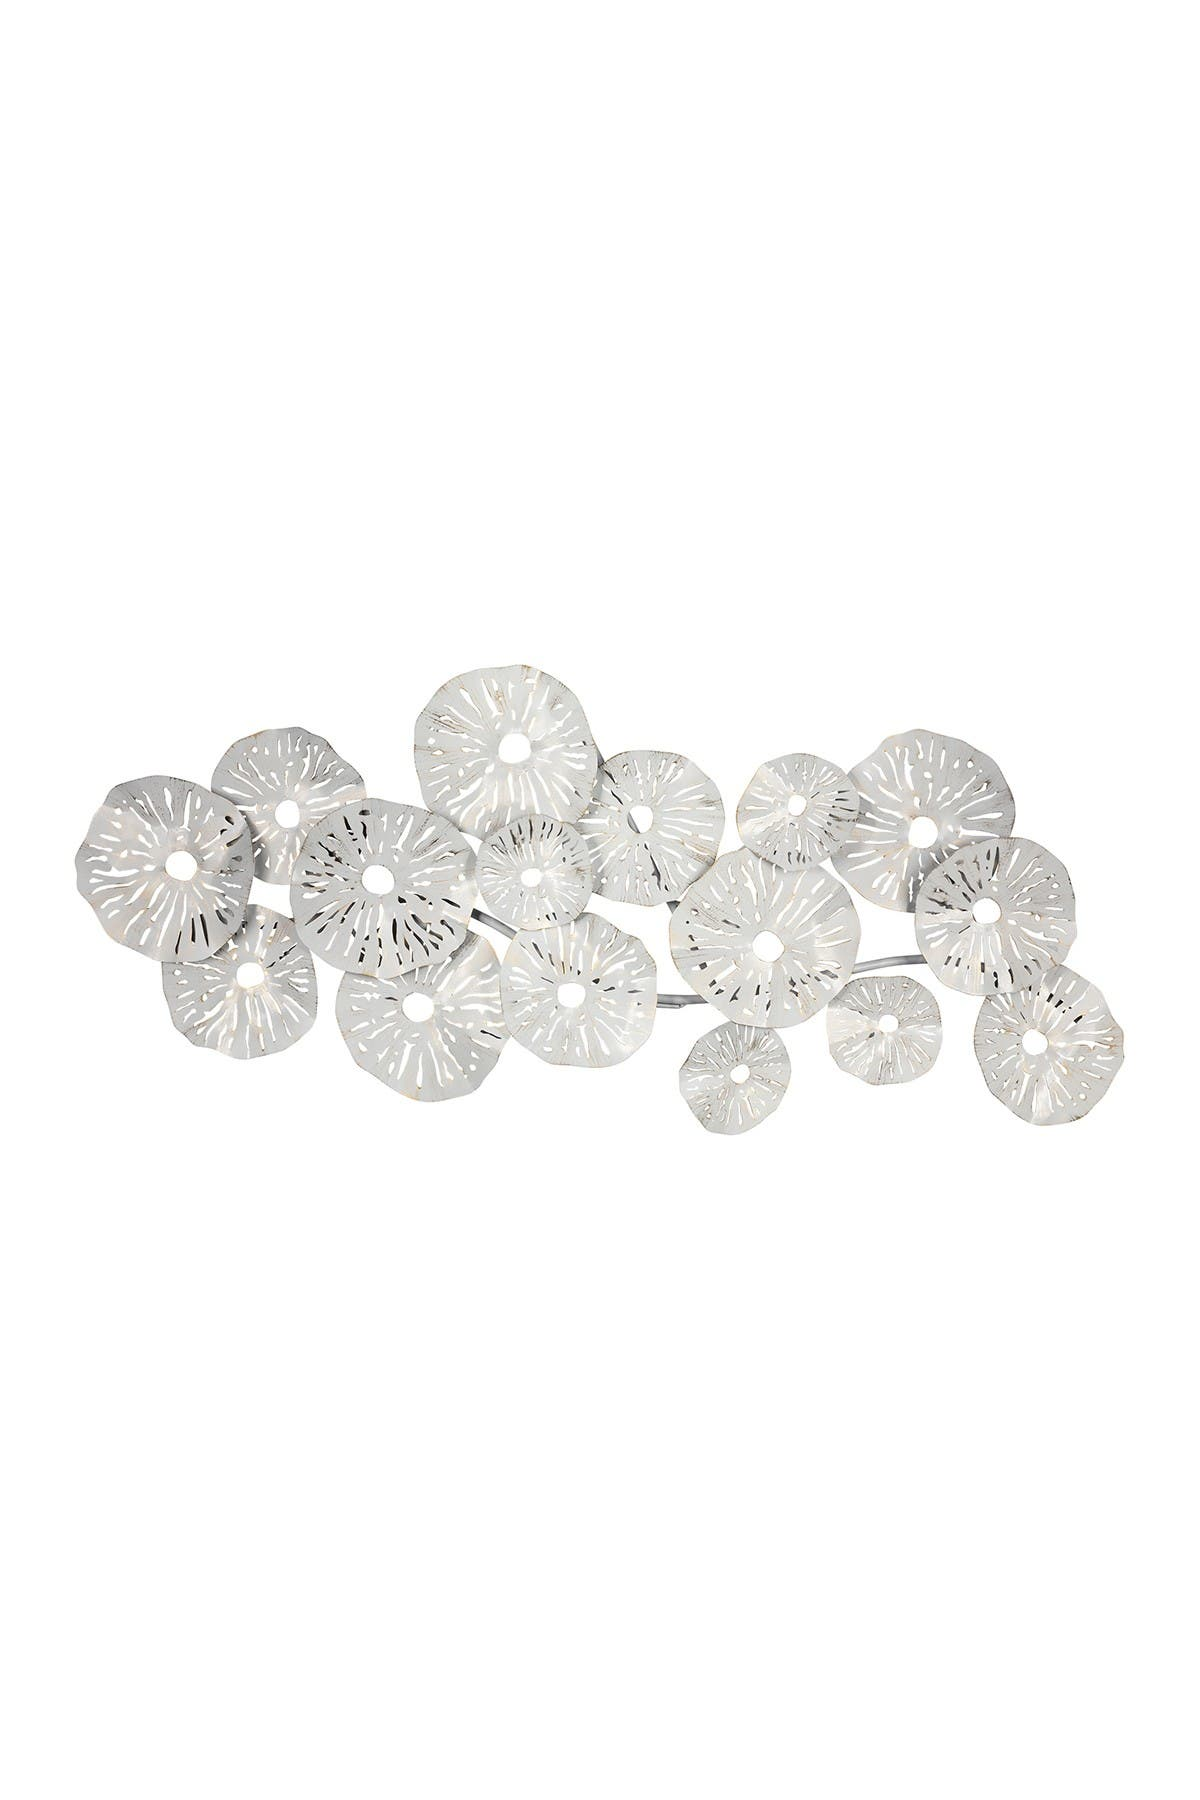 Image of Stratton Home White Layered Sand Dollar Centerpiece Wall Decor